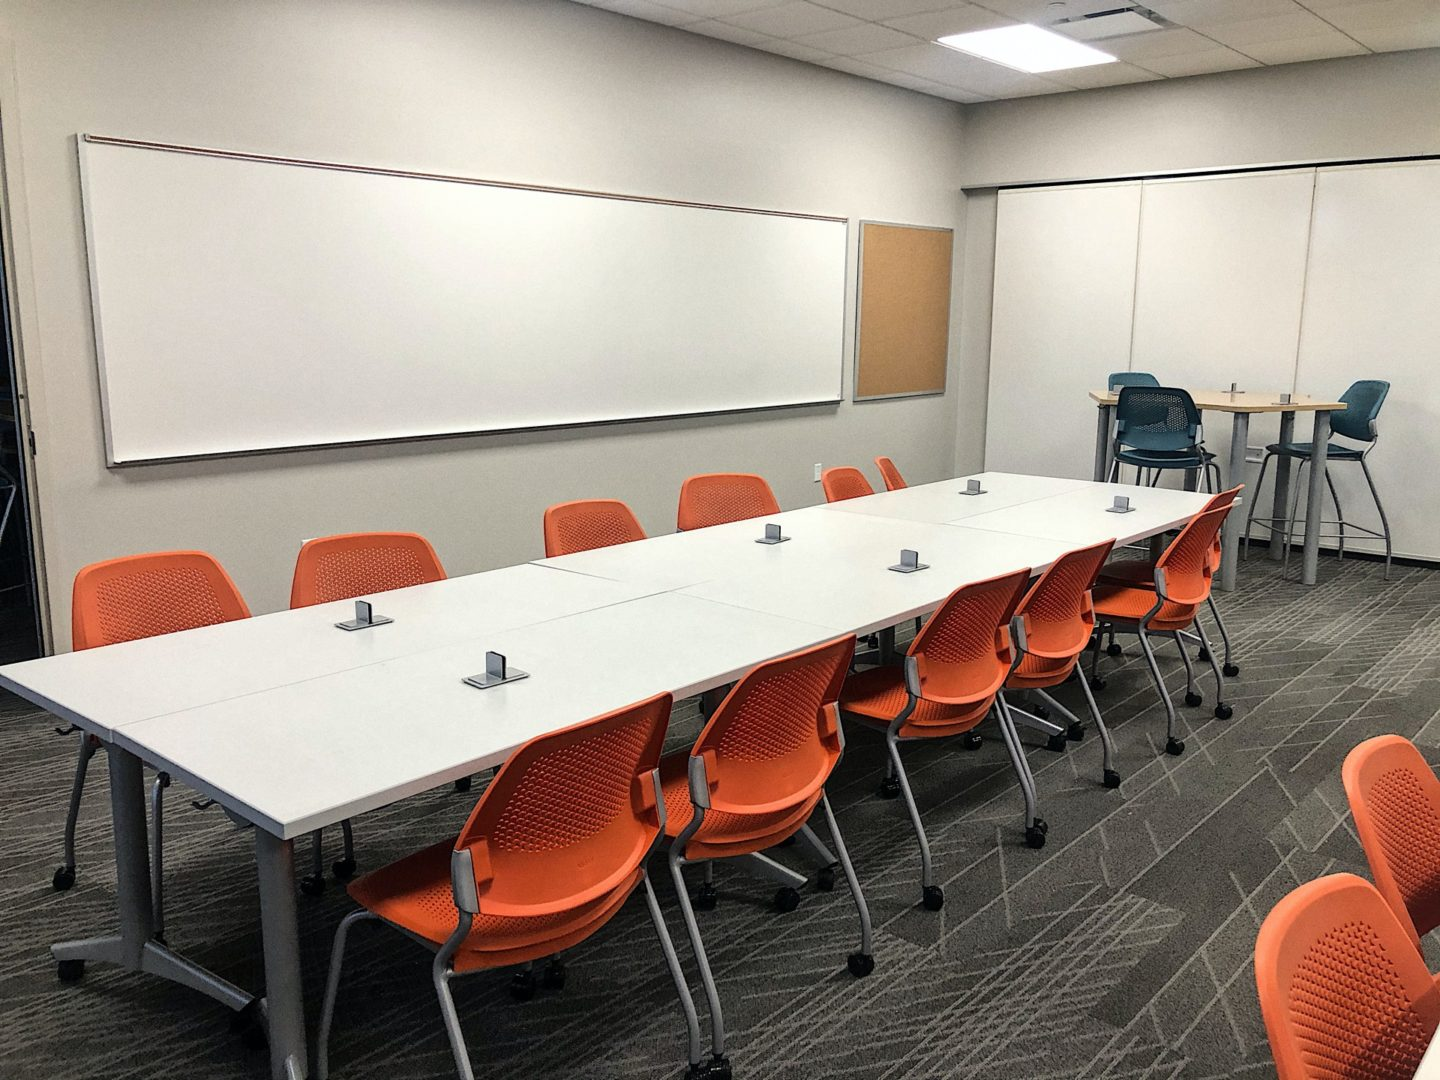 long table and chairs in a classroom